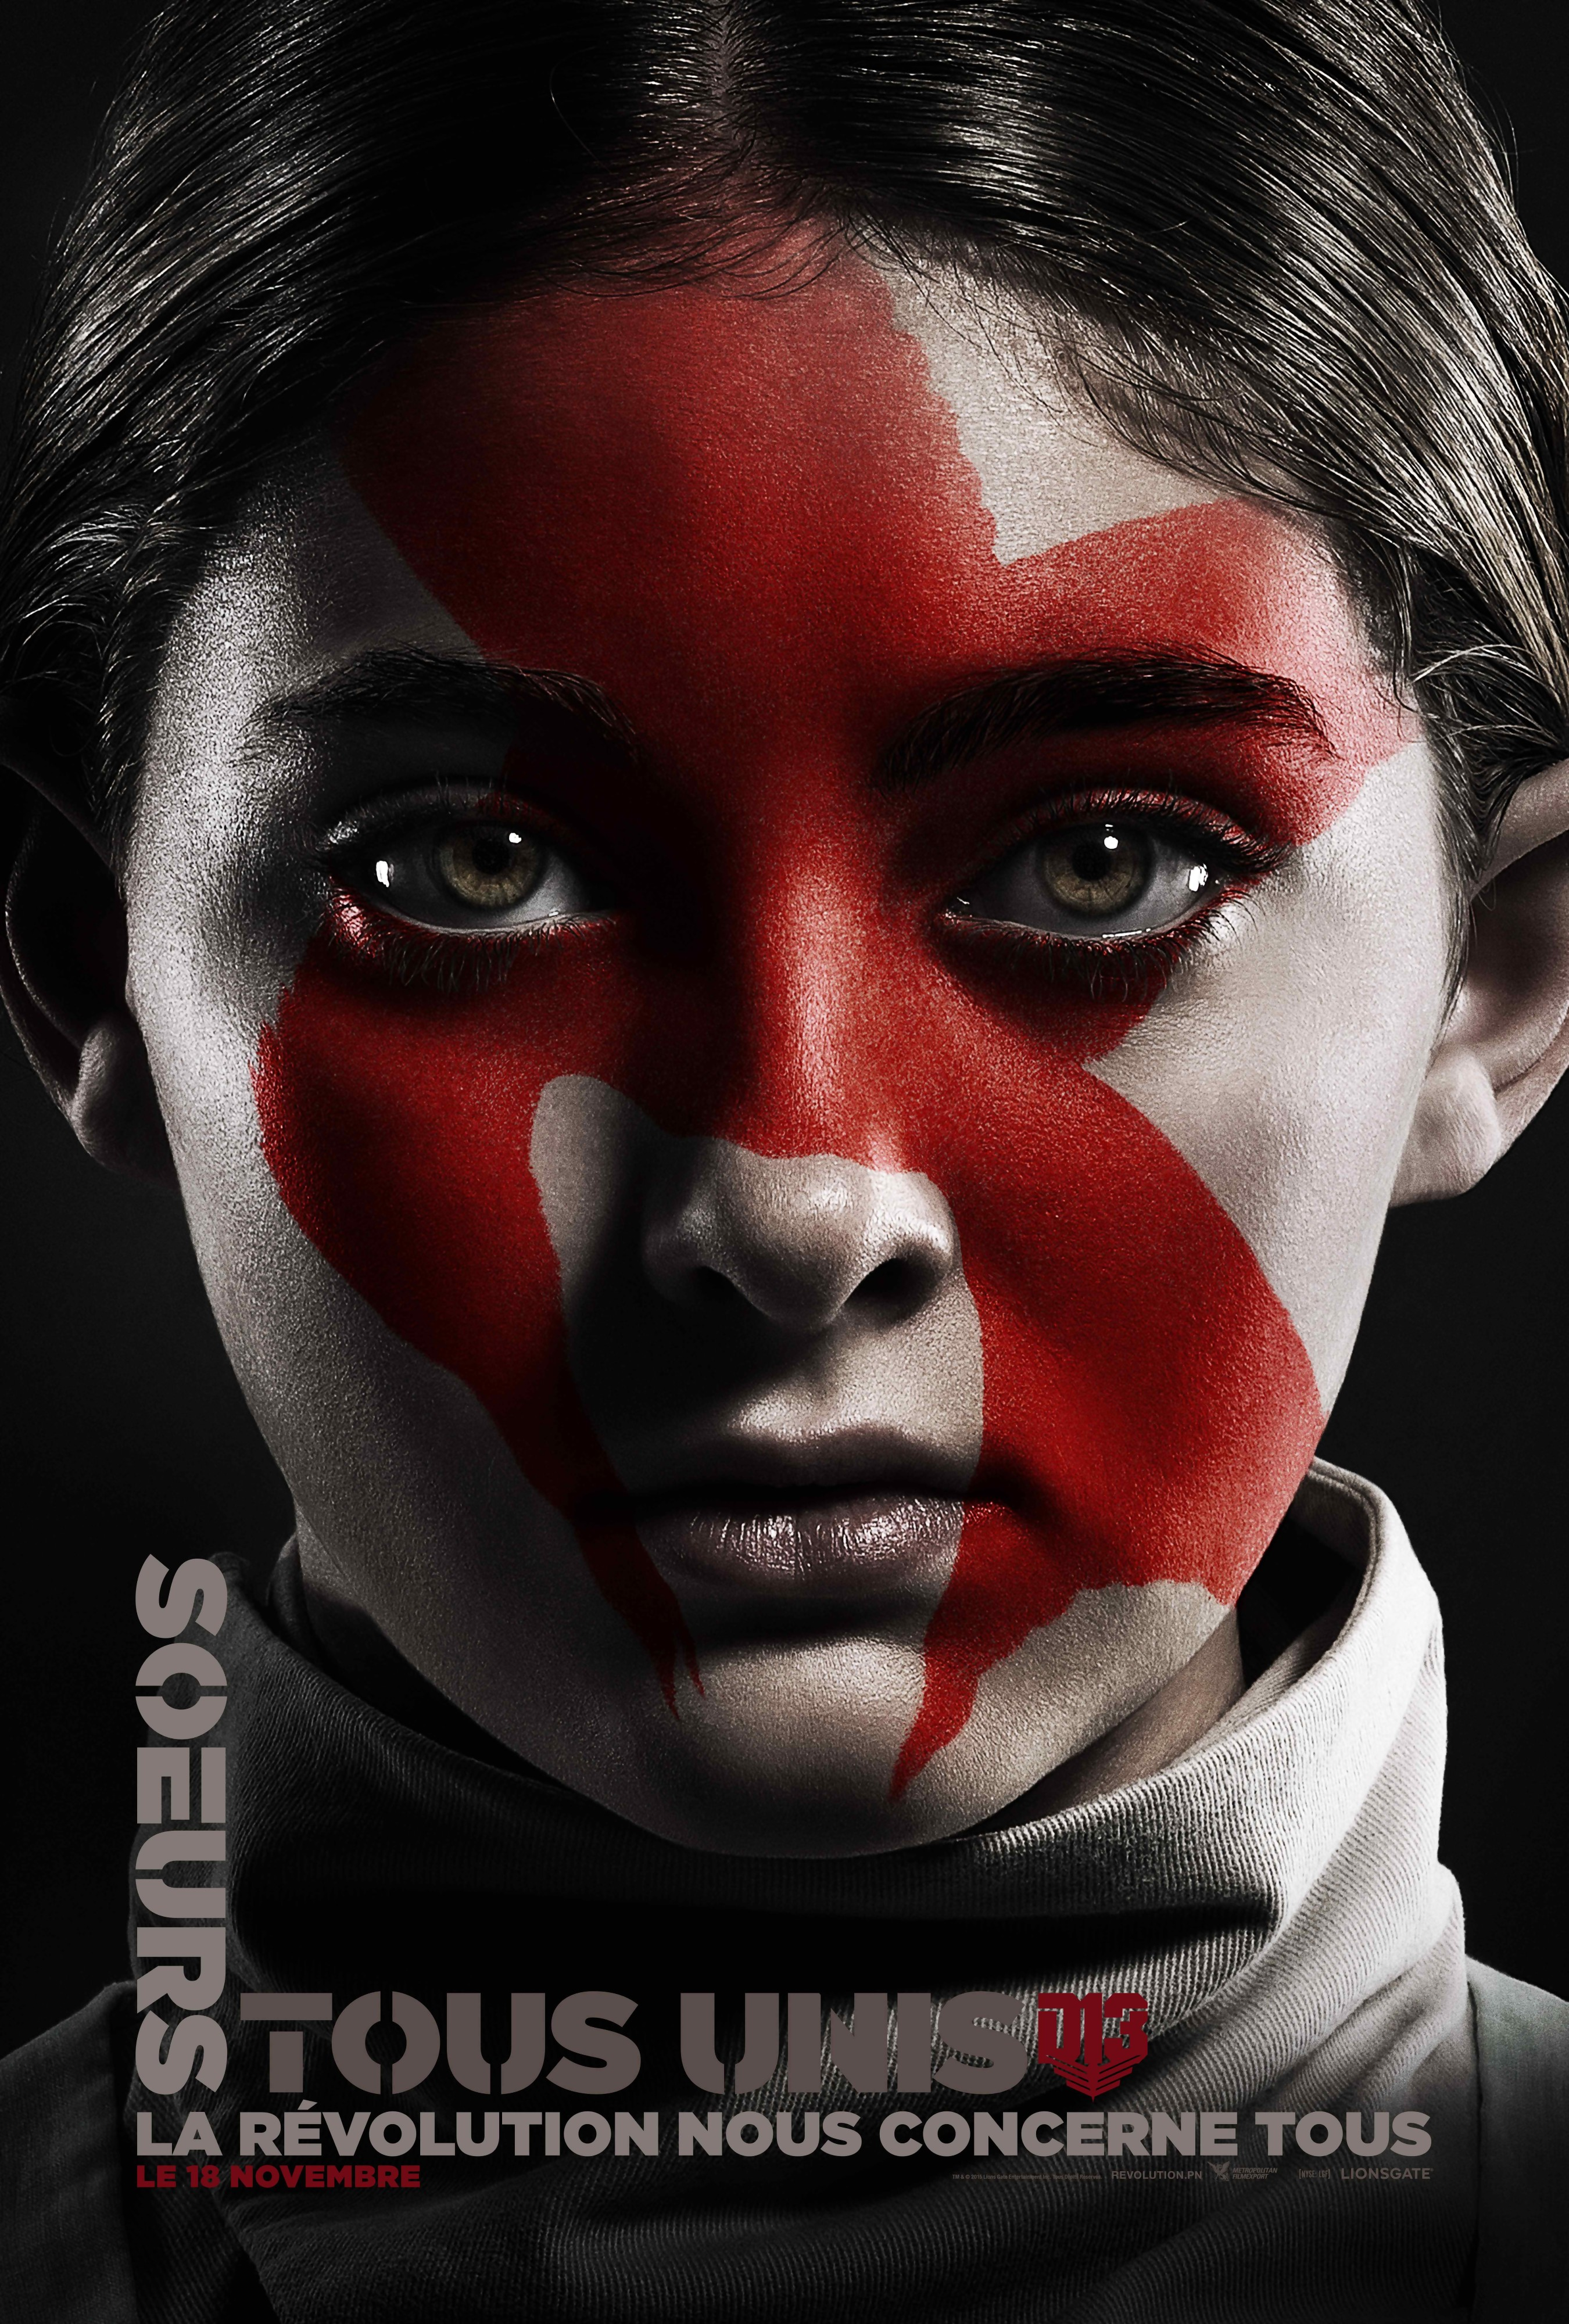 Hunger games 2 fios on demand indian casino phoenix area